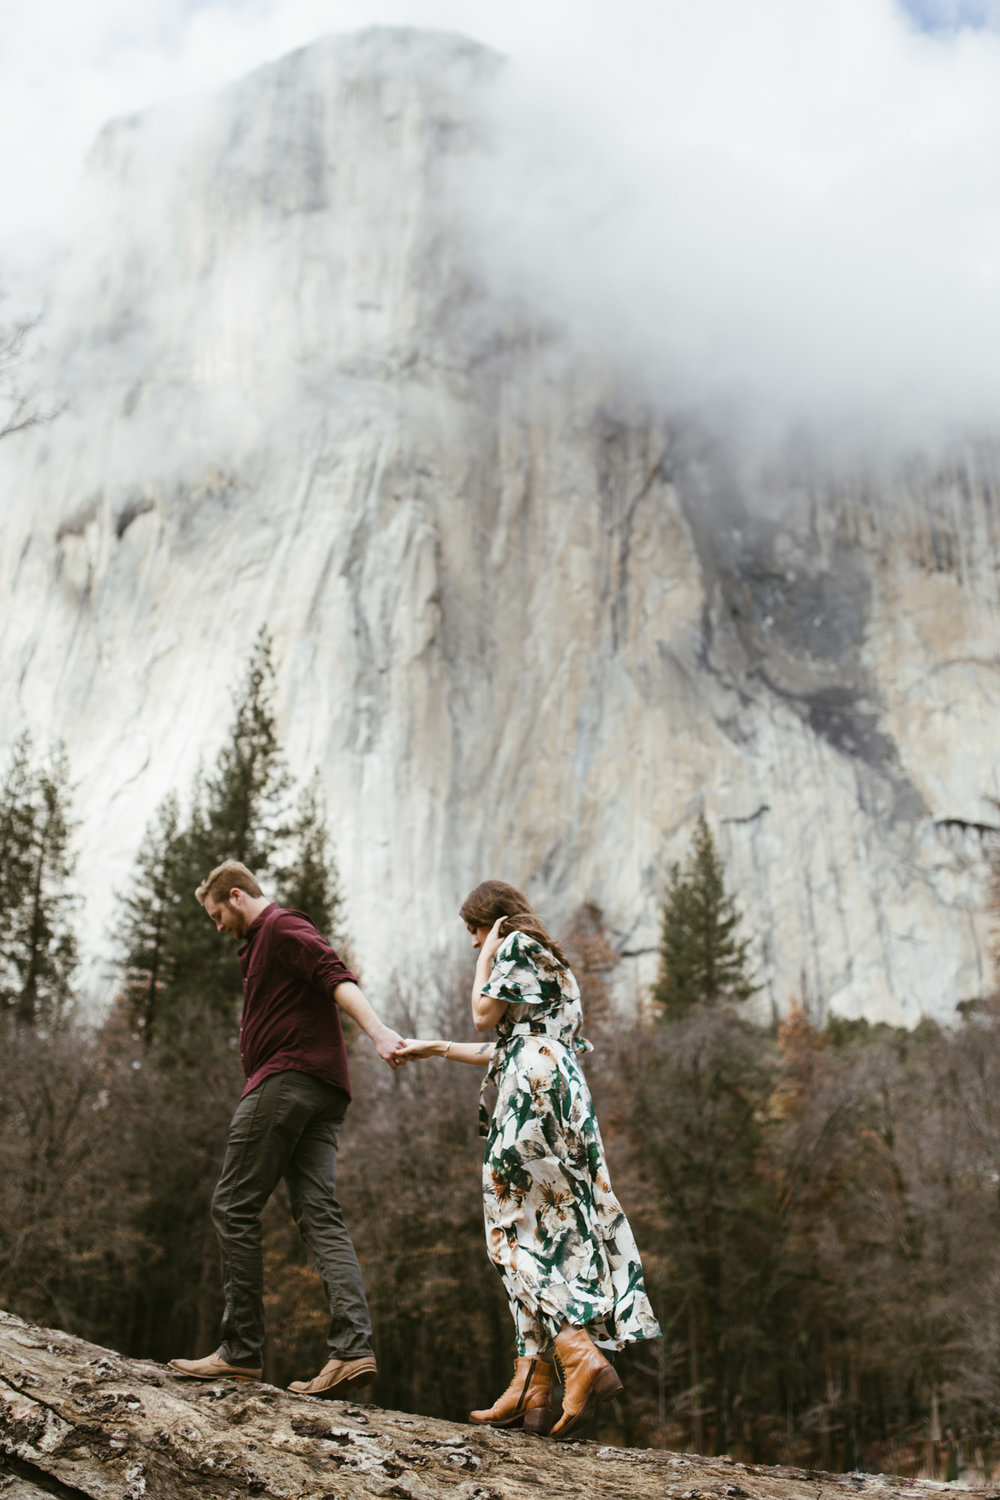 yosemite national park foggy engagement session | destination engagement photo inspiration | utah adventure elopement photographers | the hearnes adventure photography | www.thehearnes.com